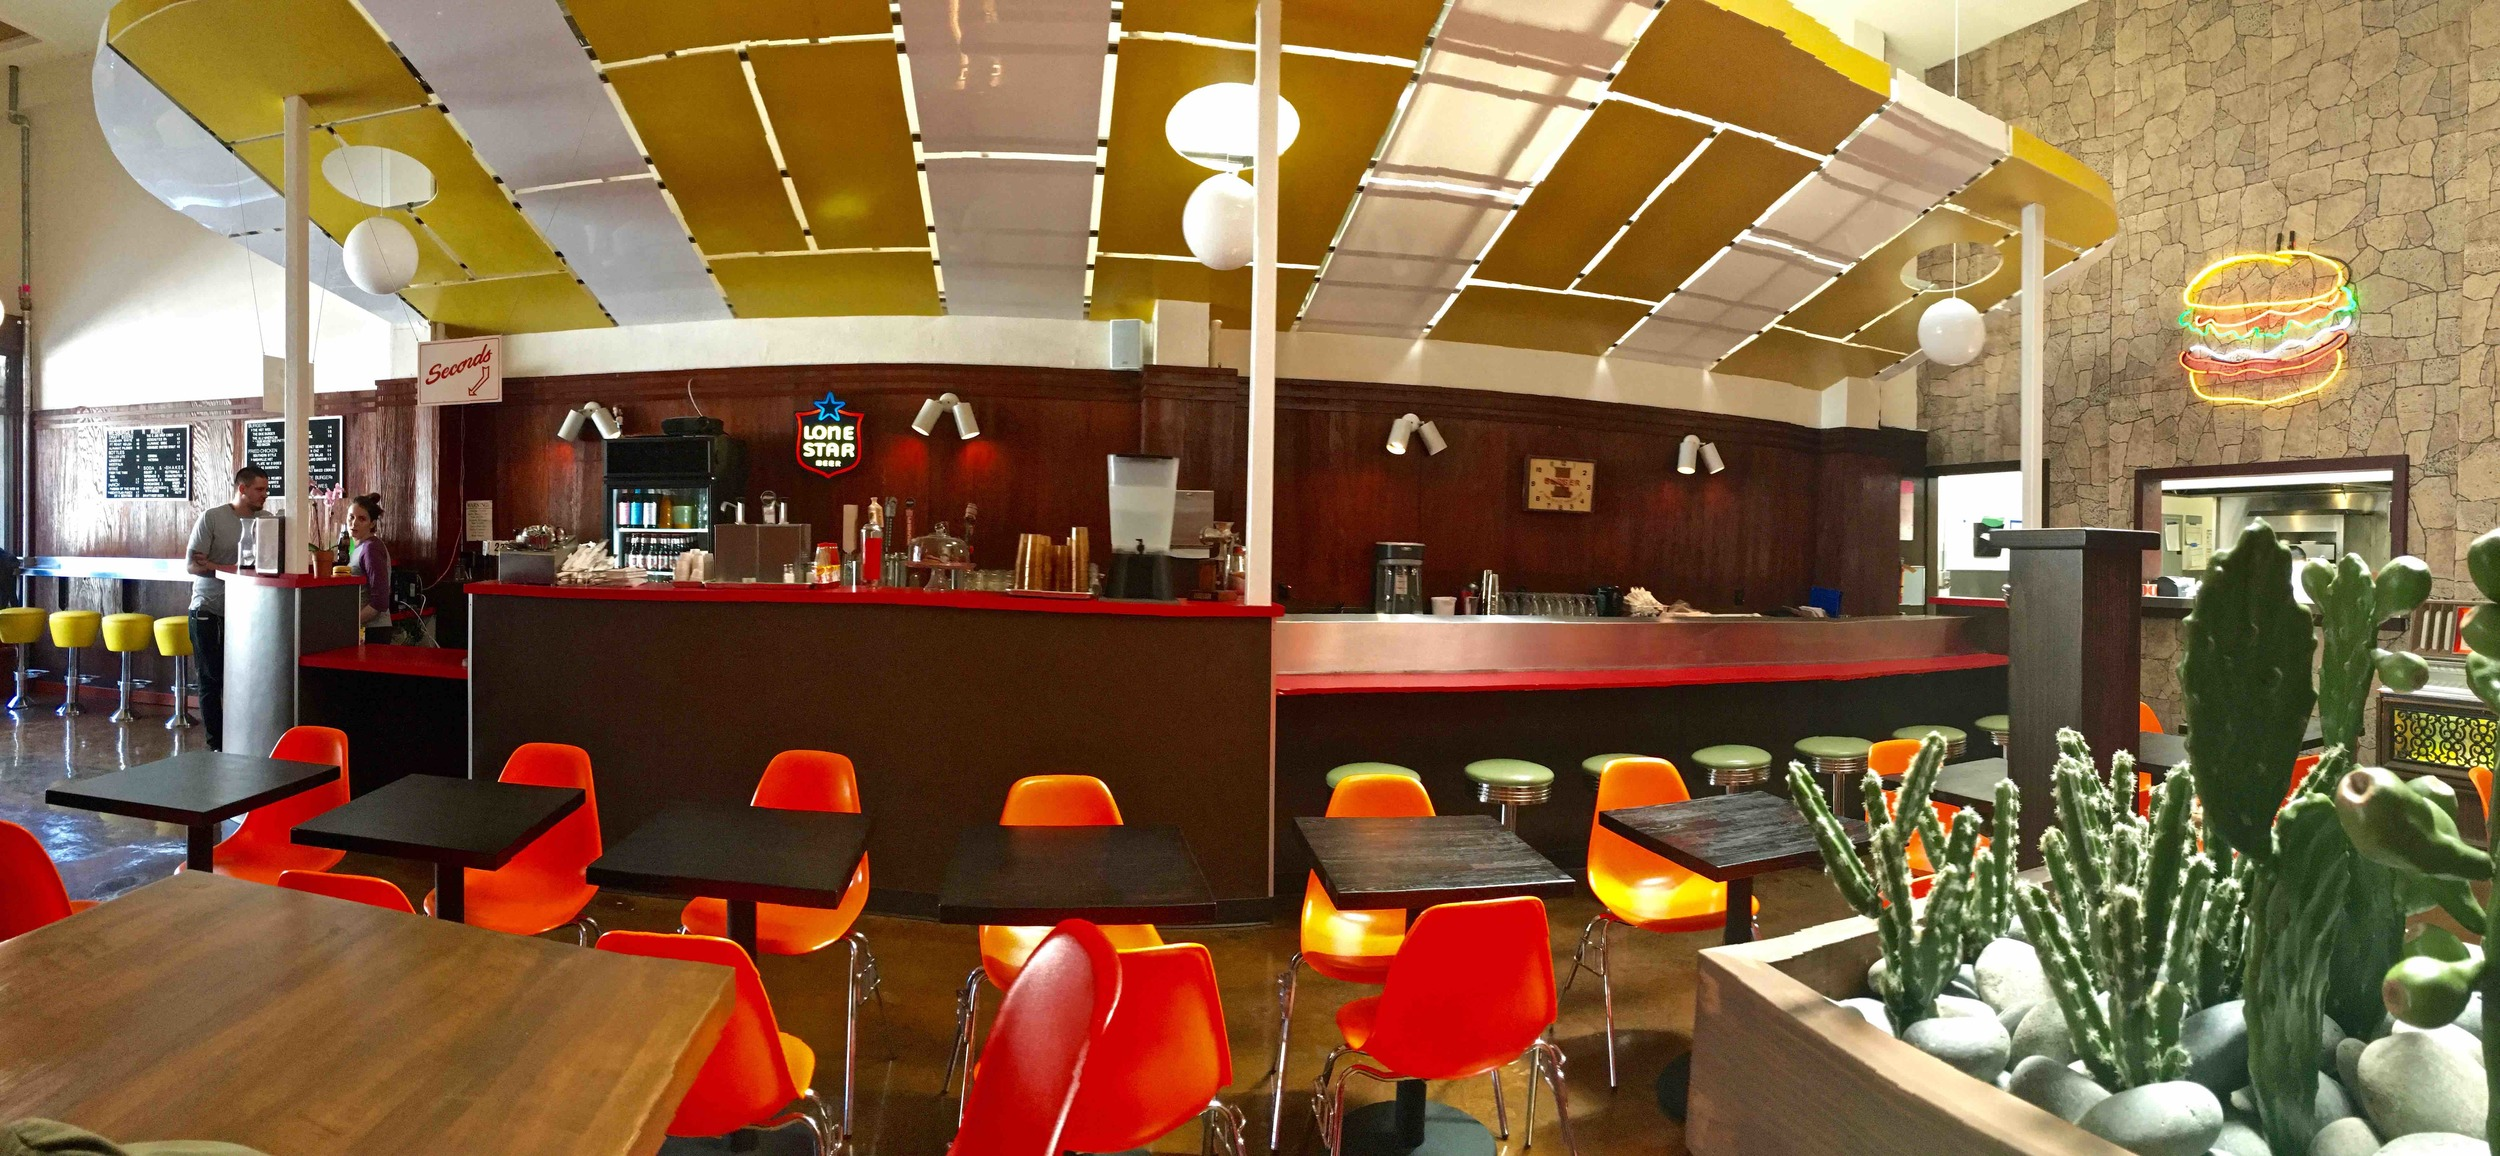 inside Wes Burger 'N More in the Mission